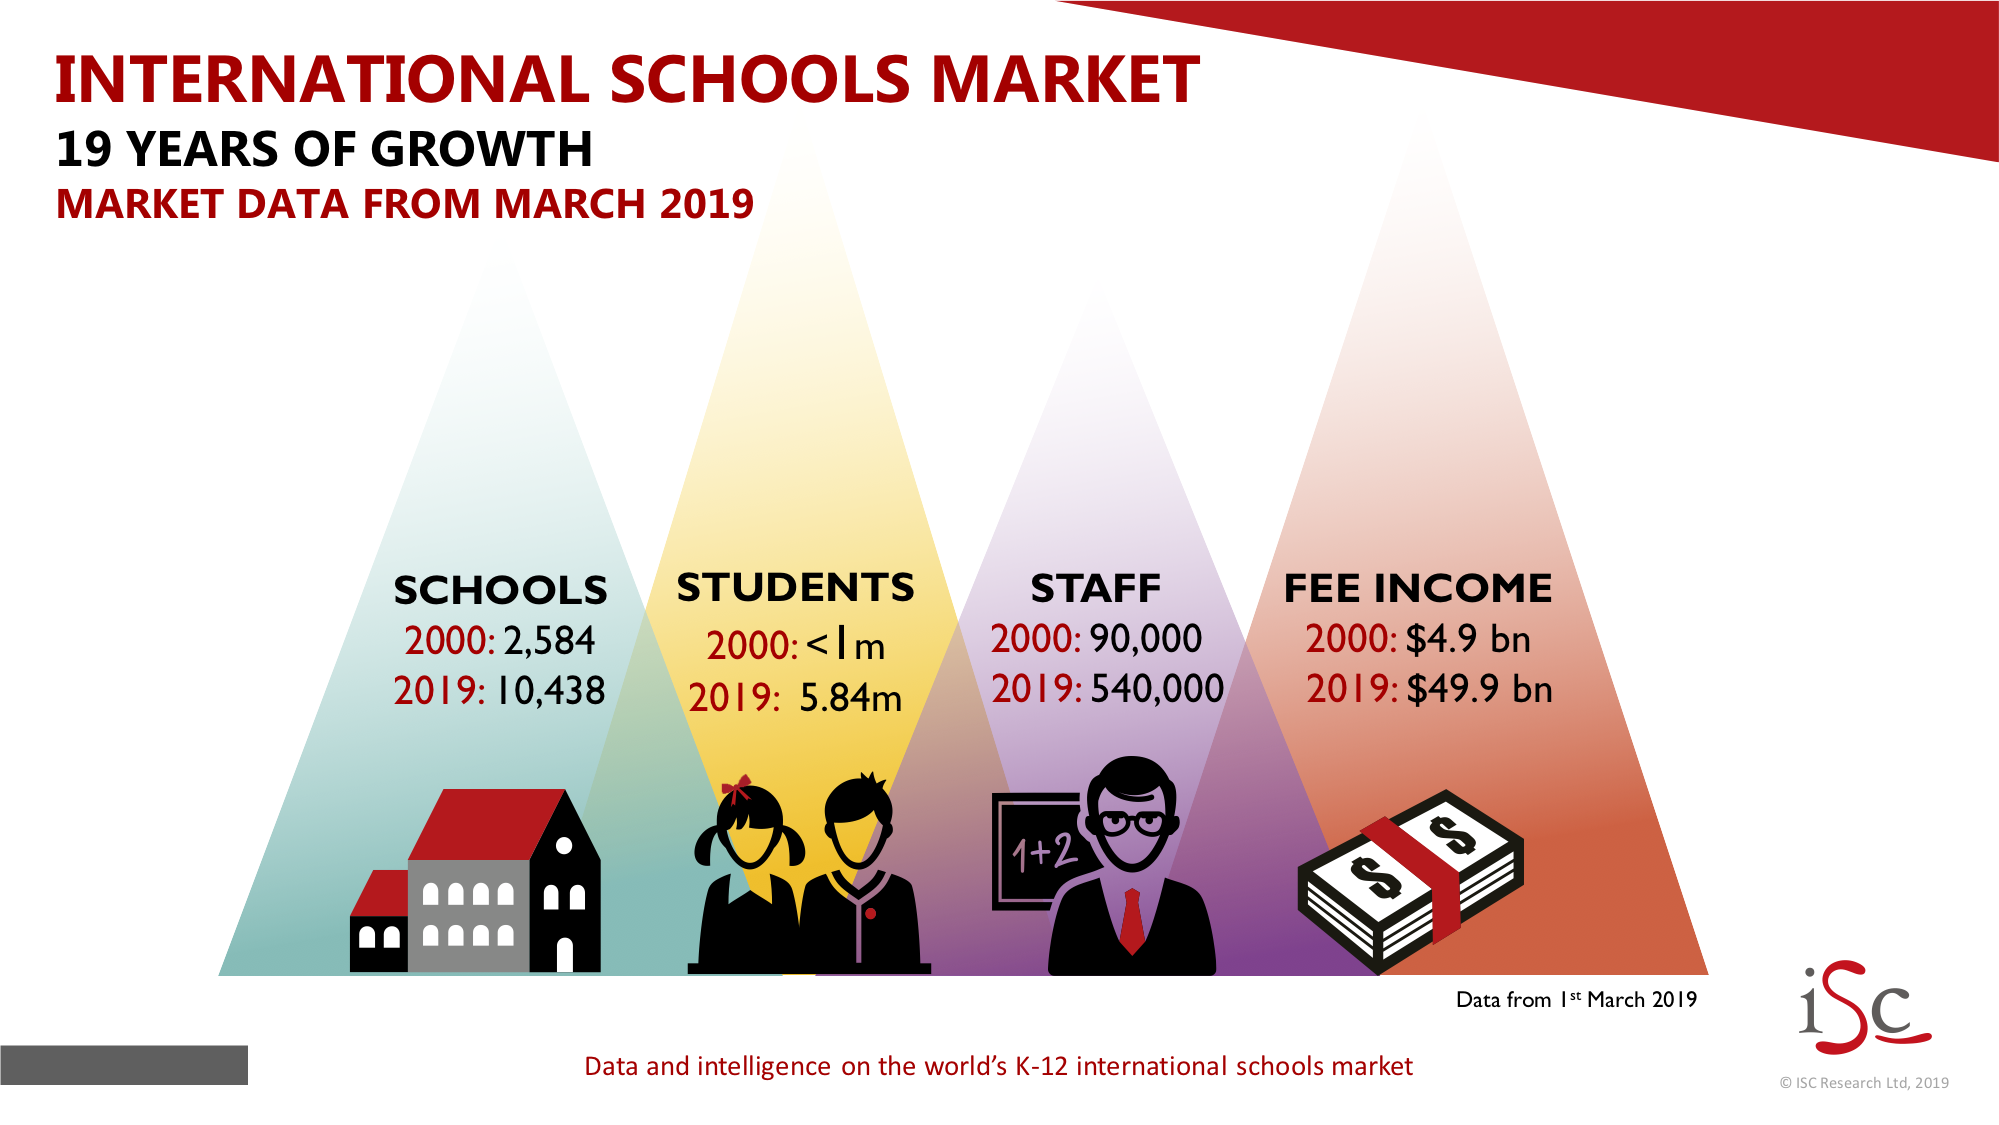 Demand for International Schools continues to grow